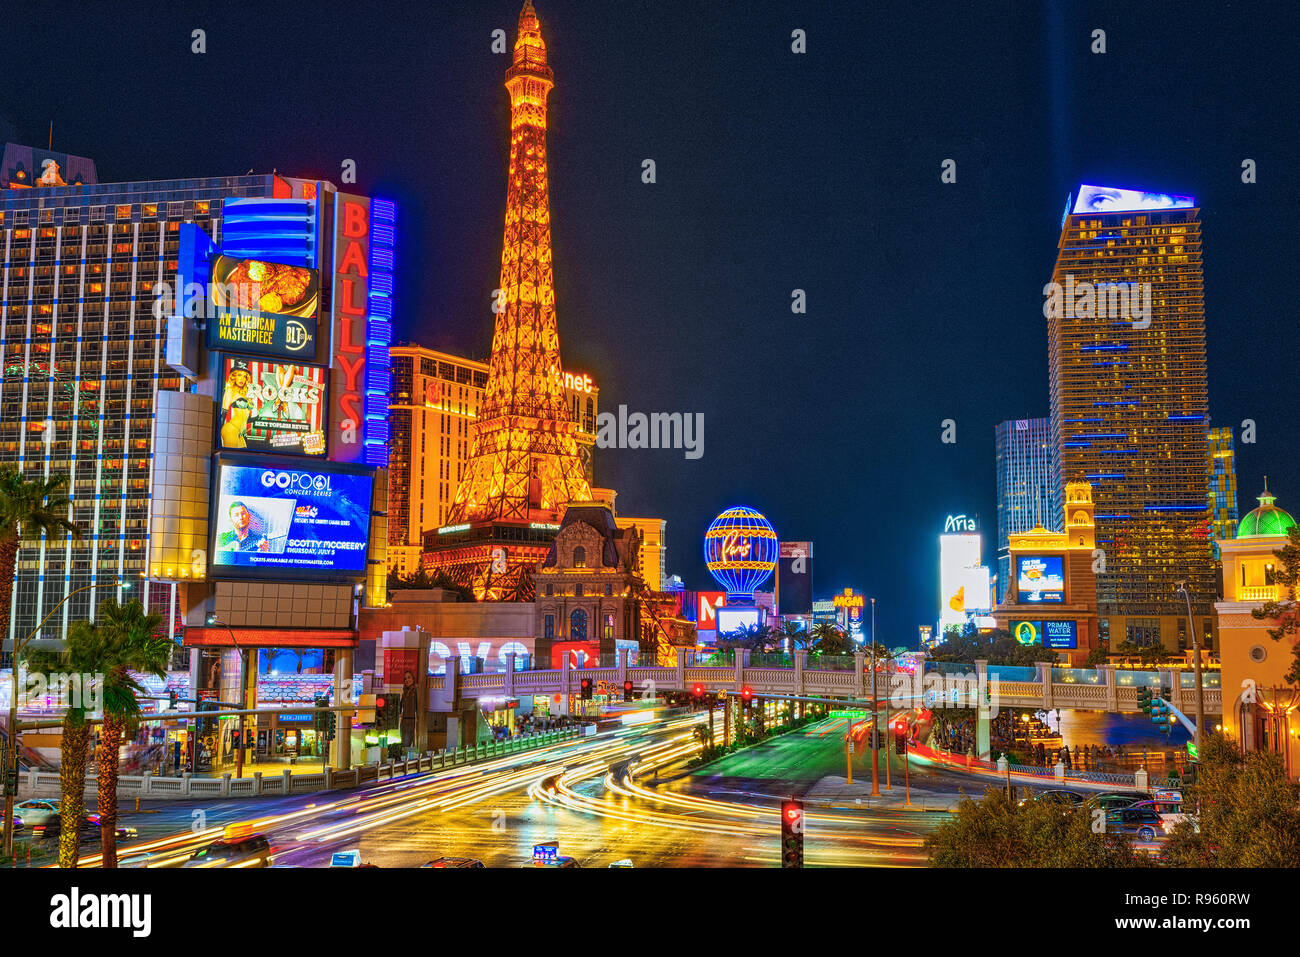 mgm grand hotel las vegas night time stock photos mgm grand hotel las vegas night time stock. Black Bedroom Furniture Sets. Home Design Ideas